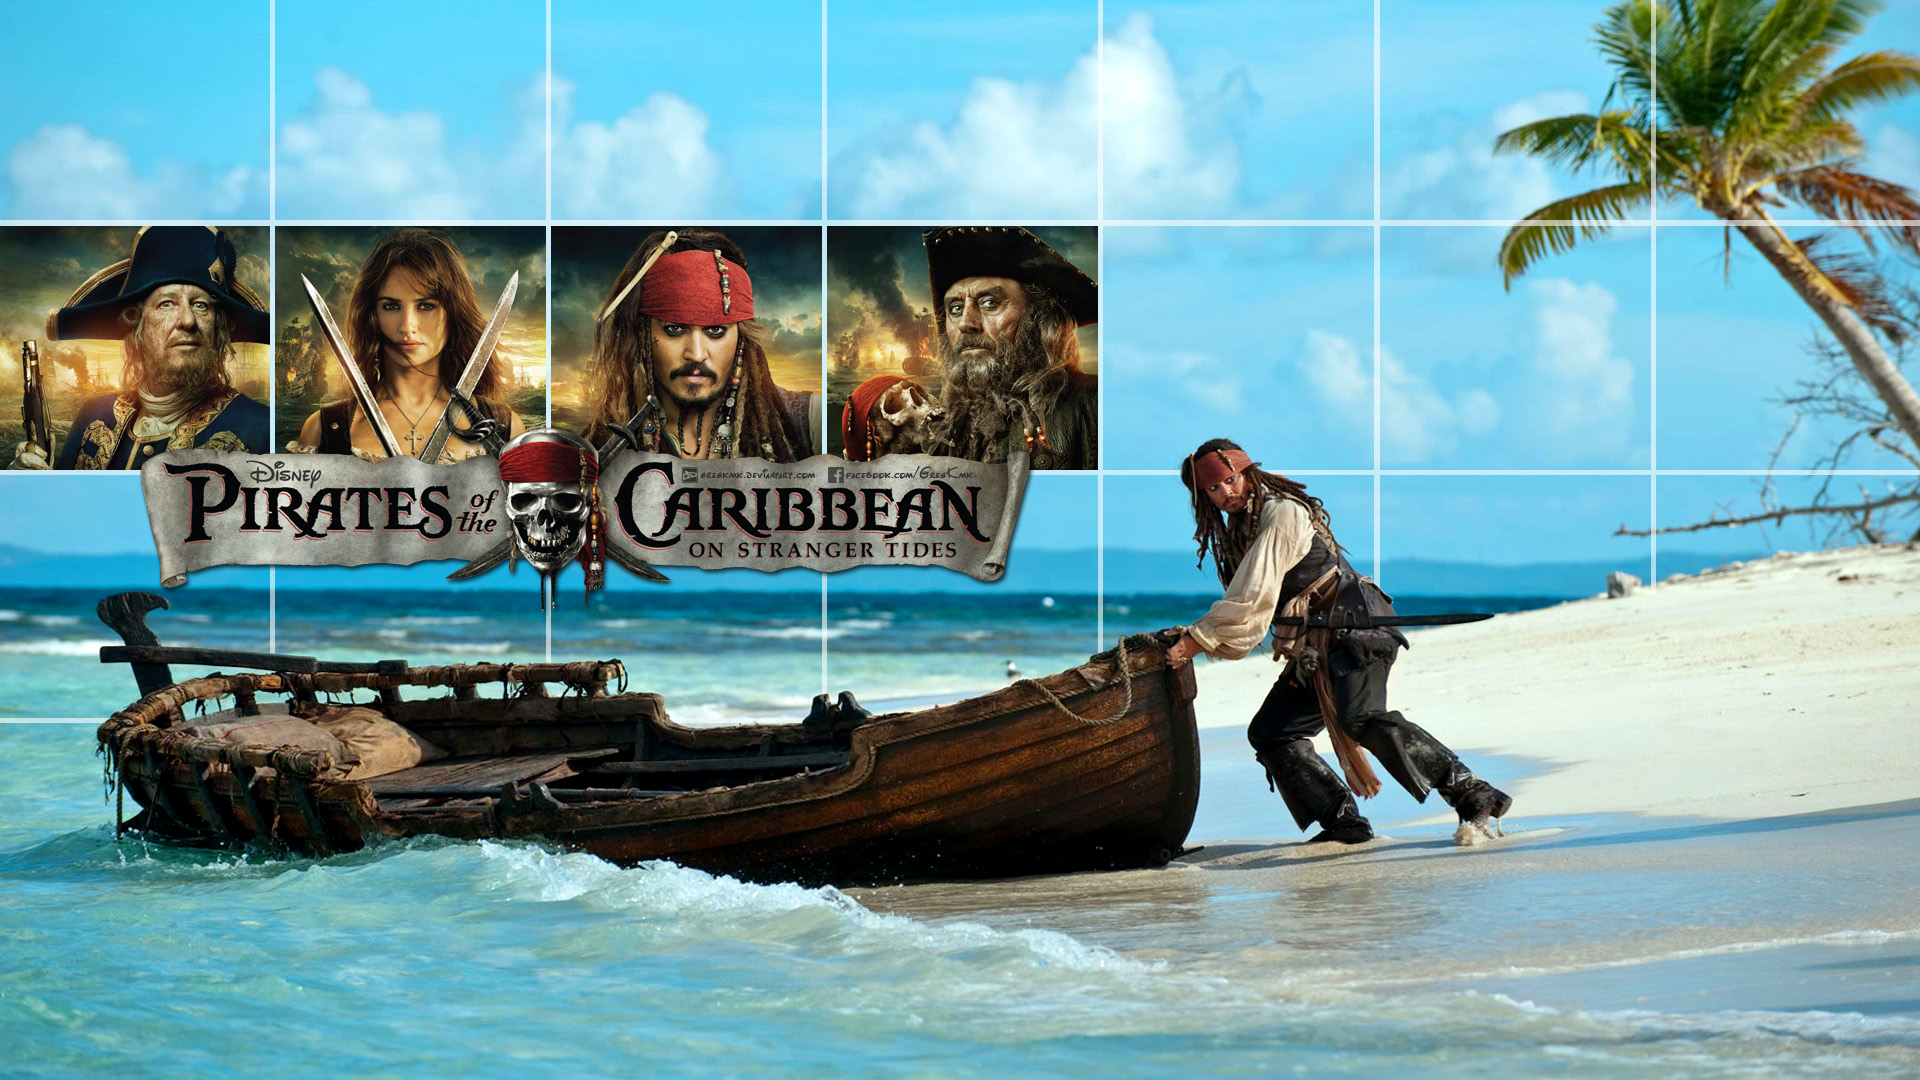 Pirates Of The Caribbean 5 Wallpapers Ship: Pirates Of The Caribbean Wallpaper 2 By GregKmk On DeviantArt